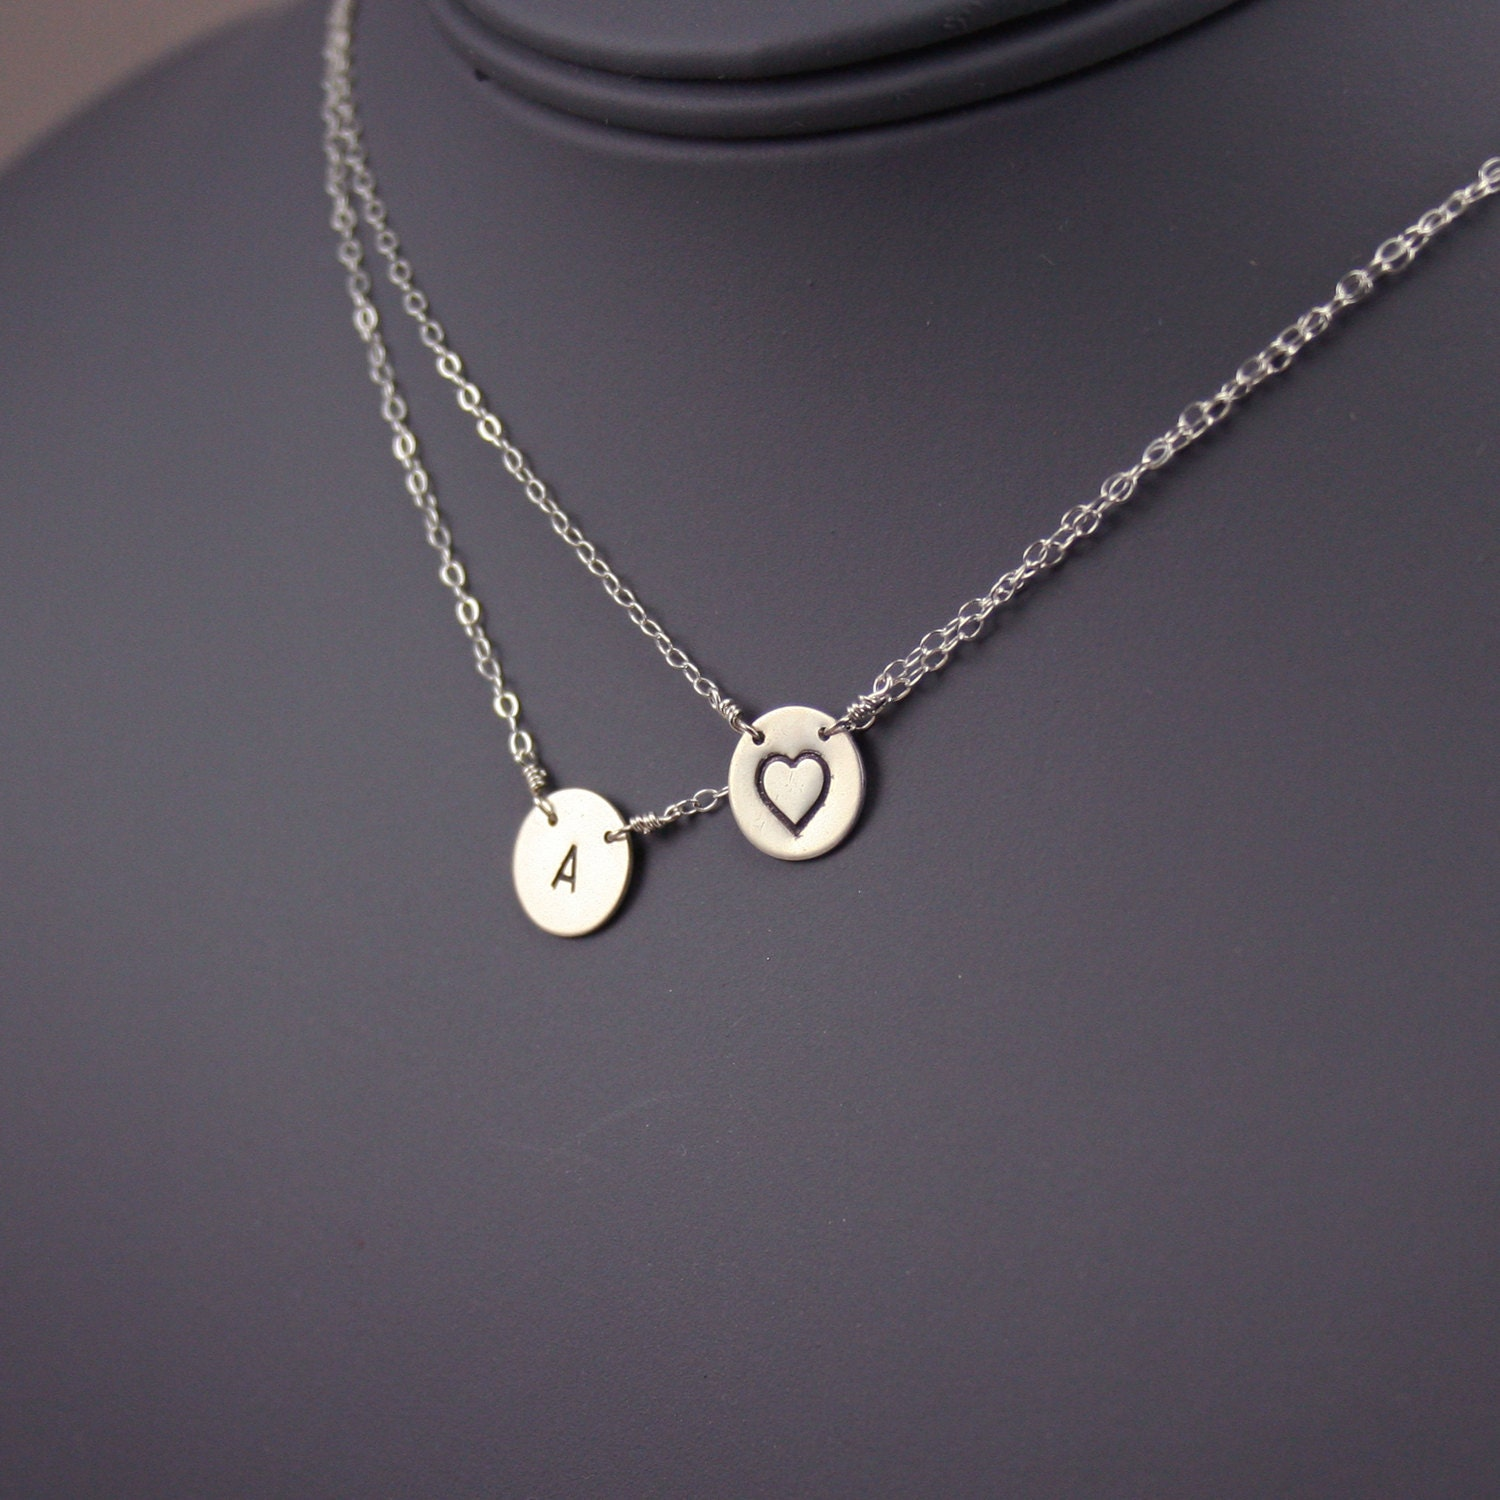 items similar to initial necklace layered disc